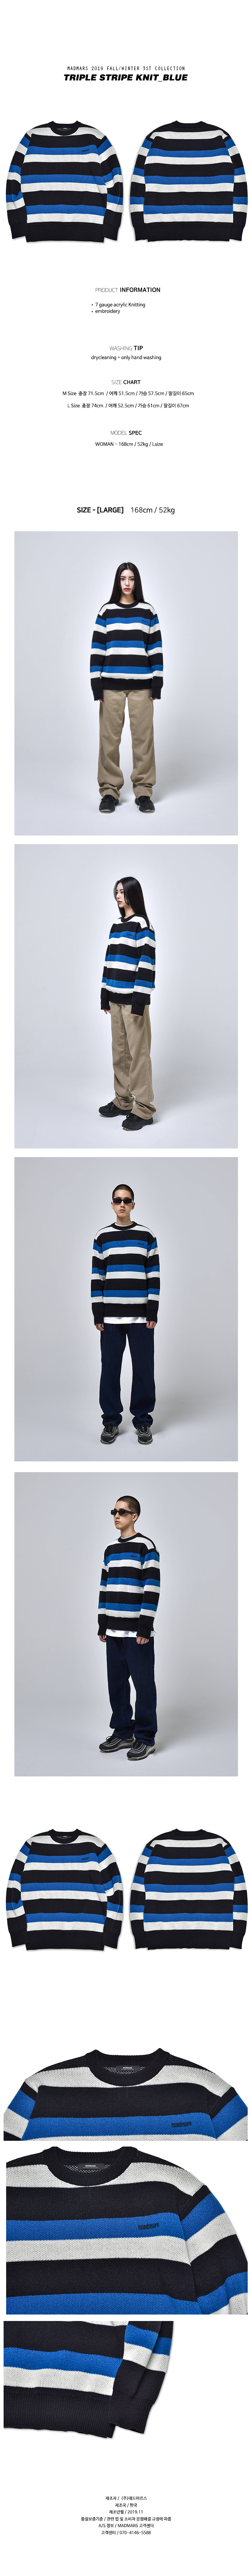 TRIPLE STRIPE KNIT_BLUE1.jpg